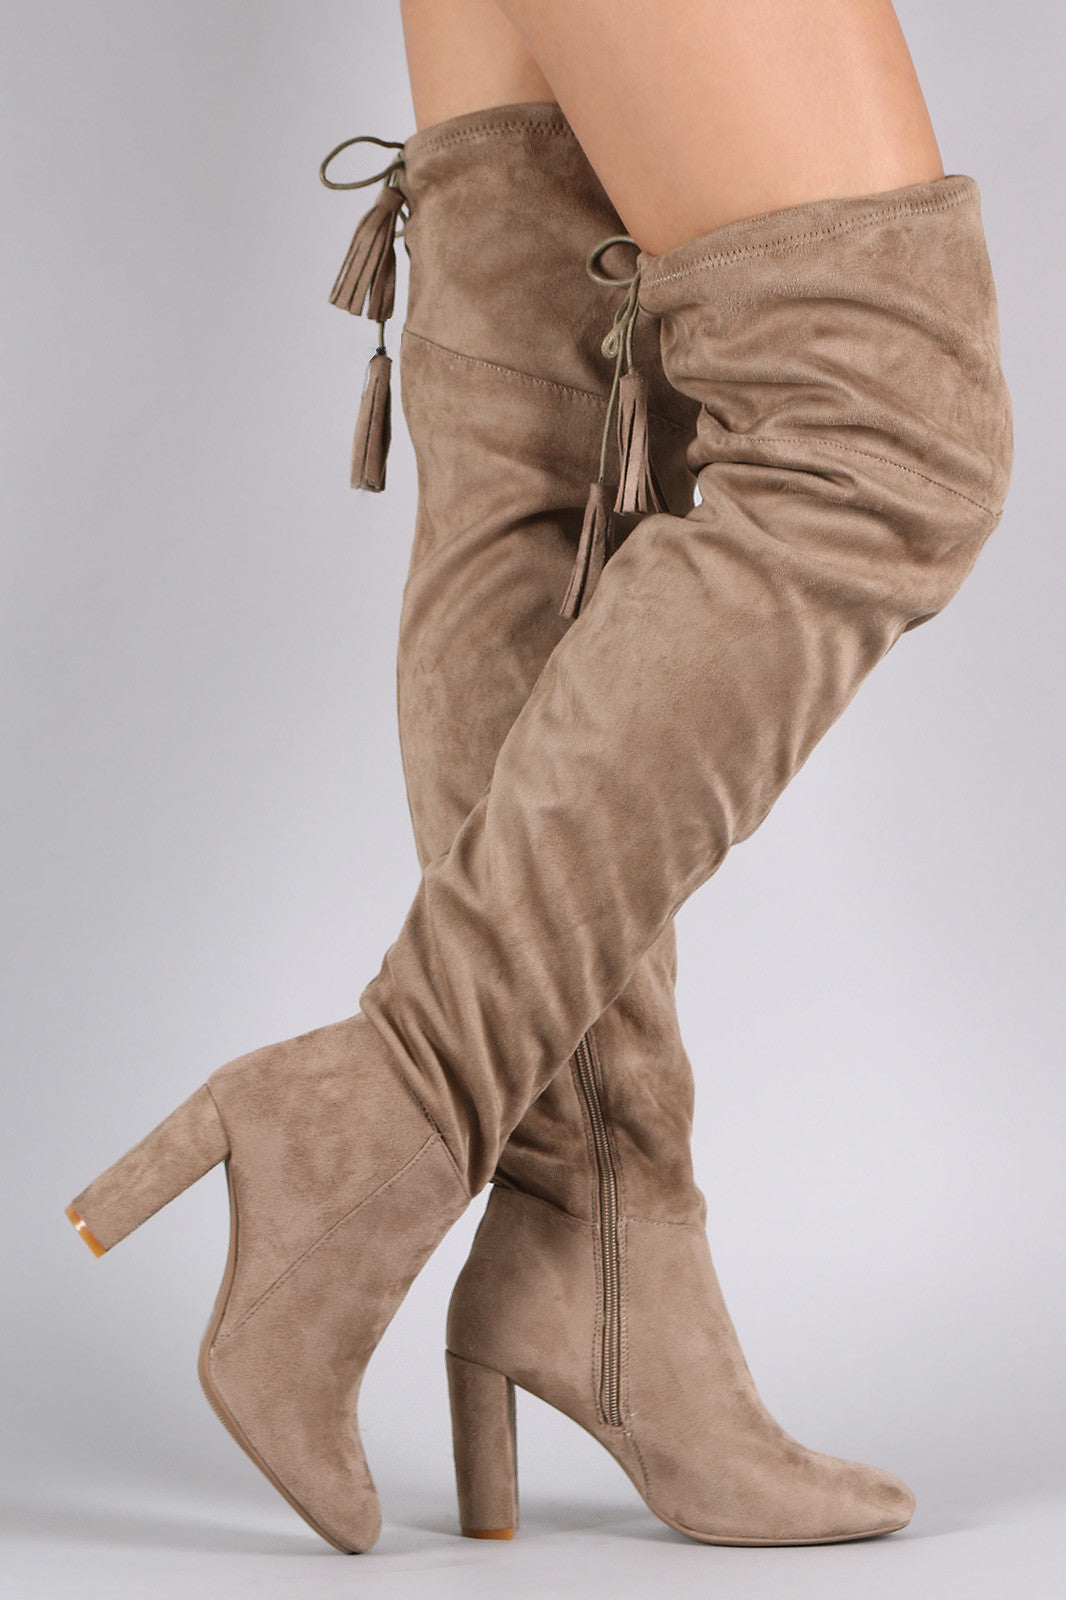 Suede Tassel Drawstring Chunky Heeled Over-The-Knee Boots - Thick 'N' Curvy Shop - 1